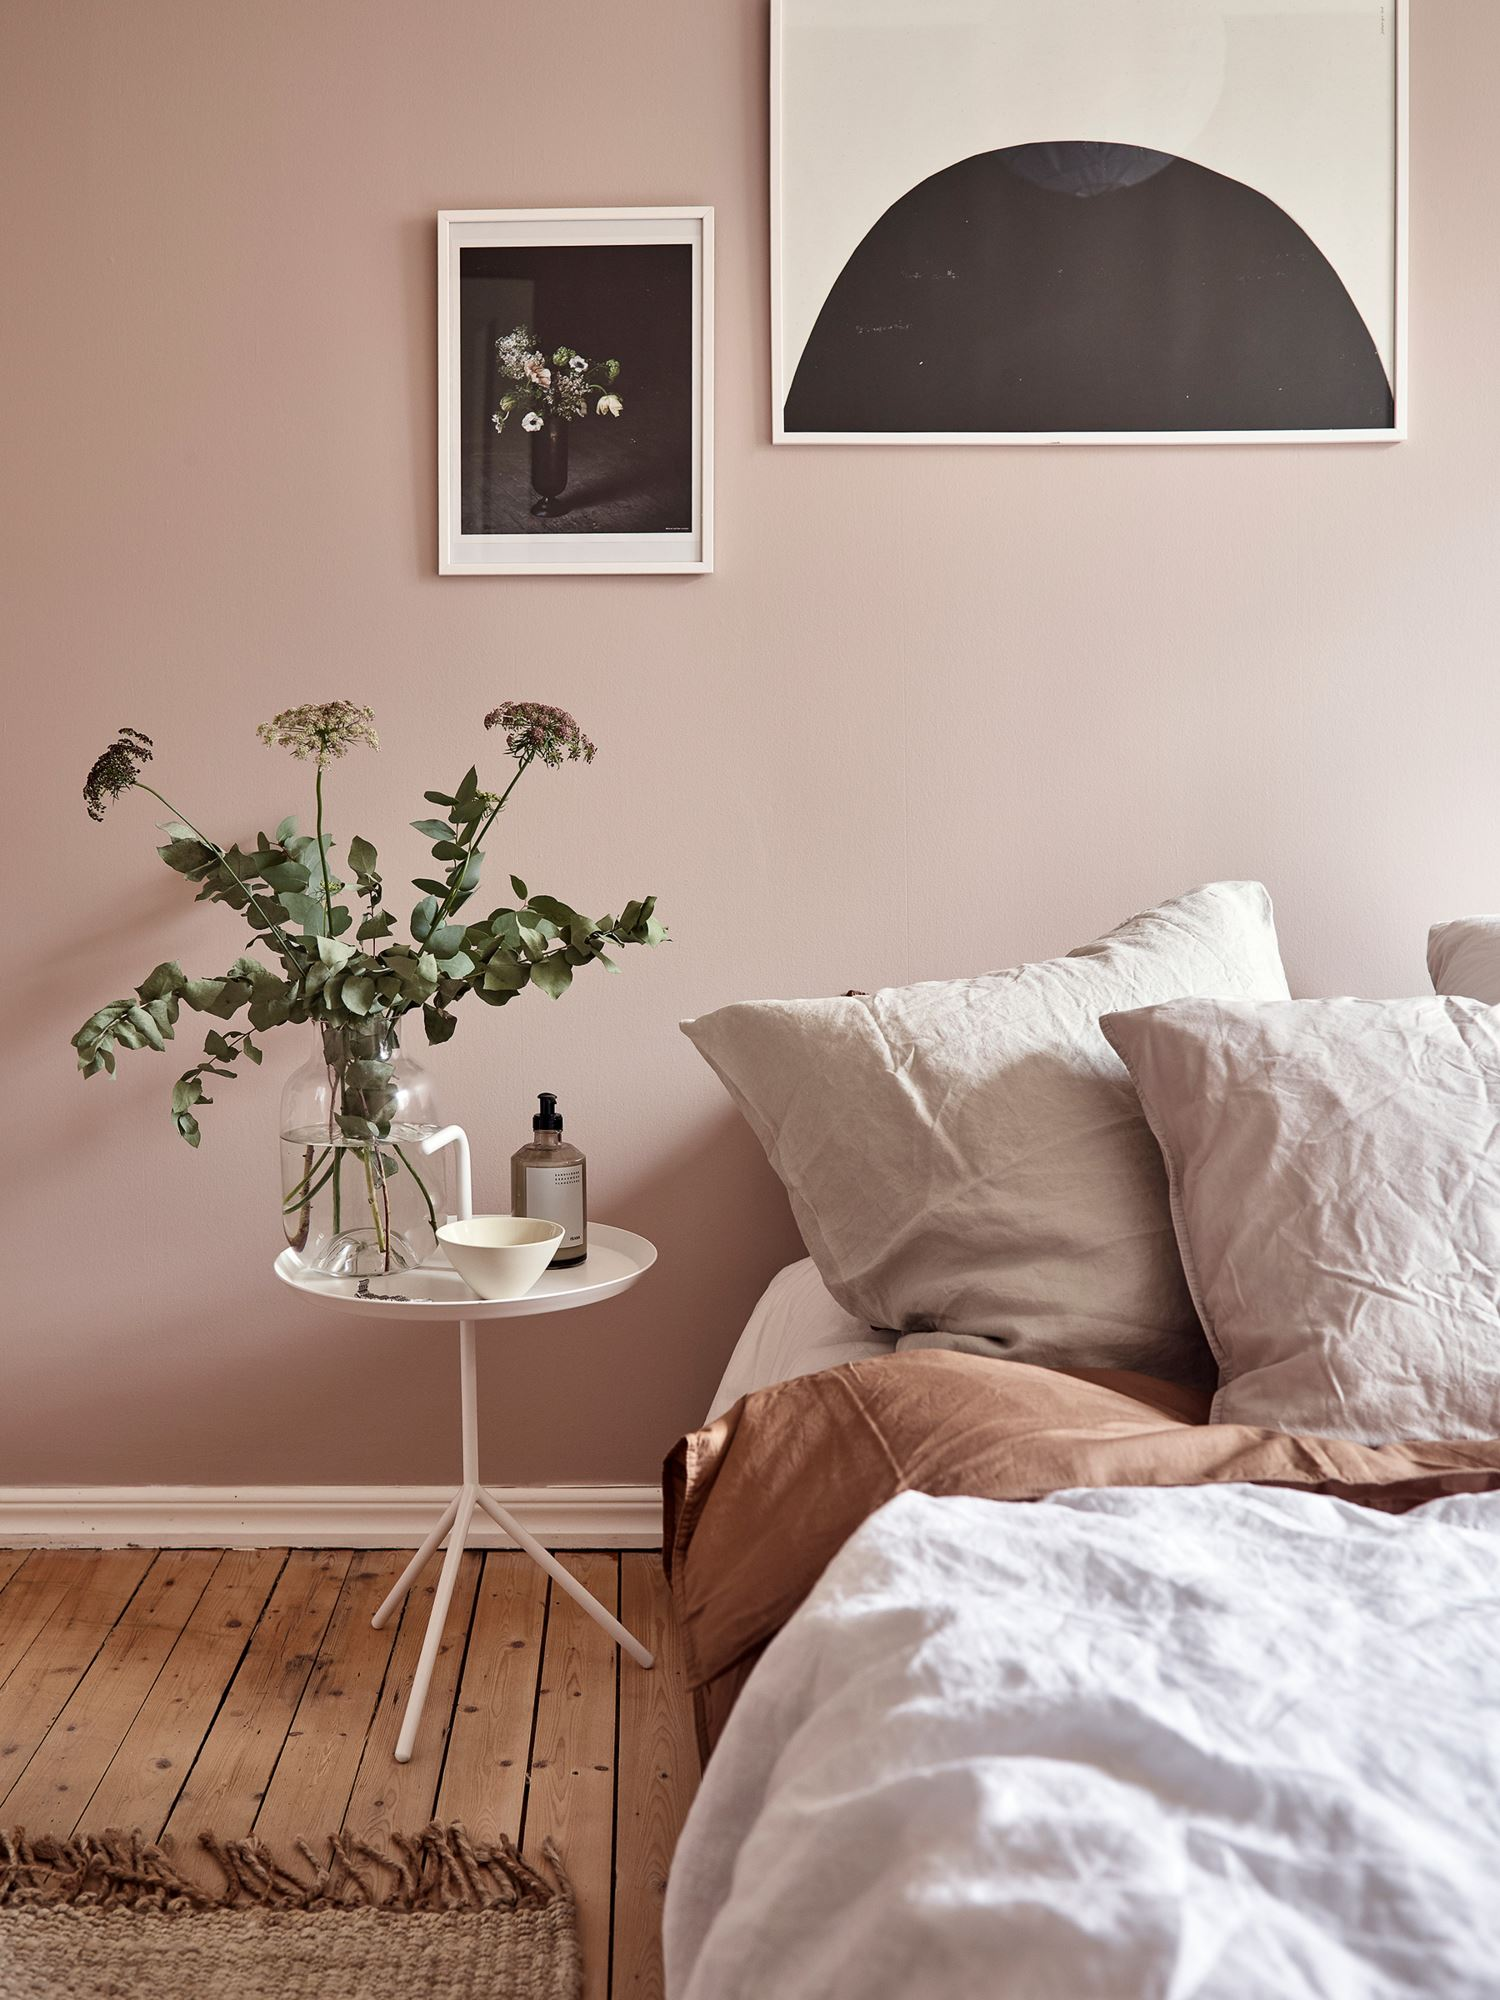 Dusty pink bedroom walls - COCO LAPINE DESIGNCOCO ...